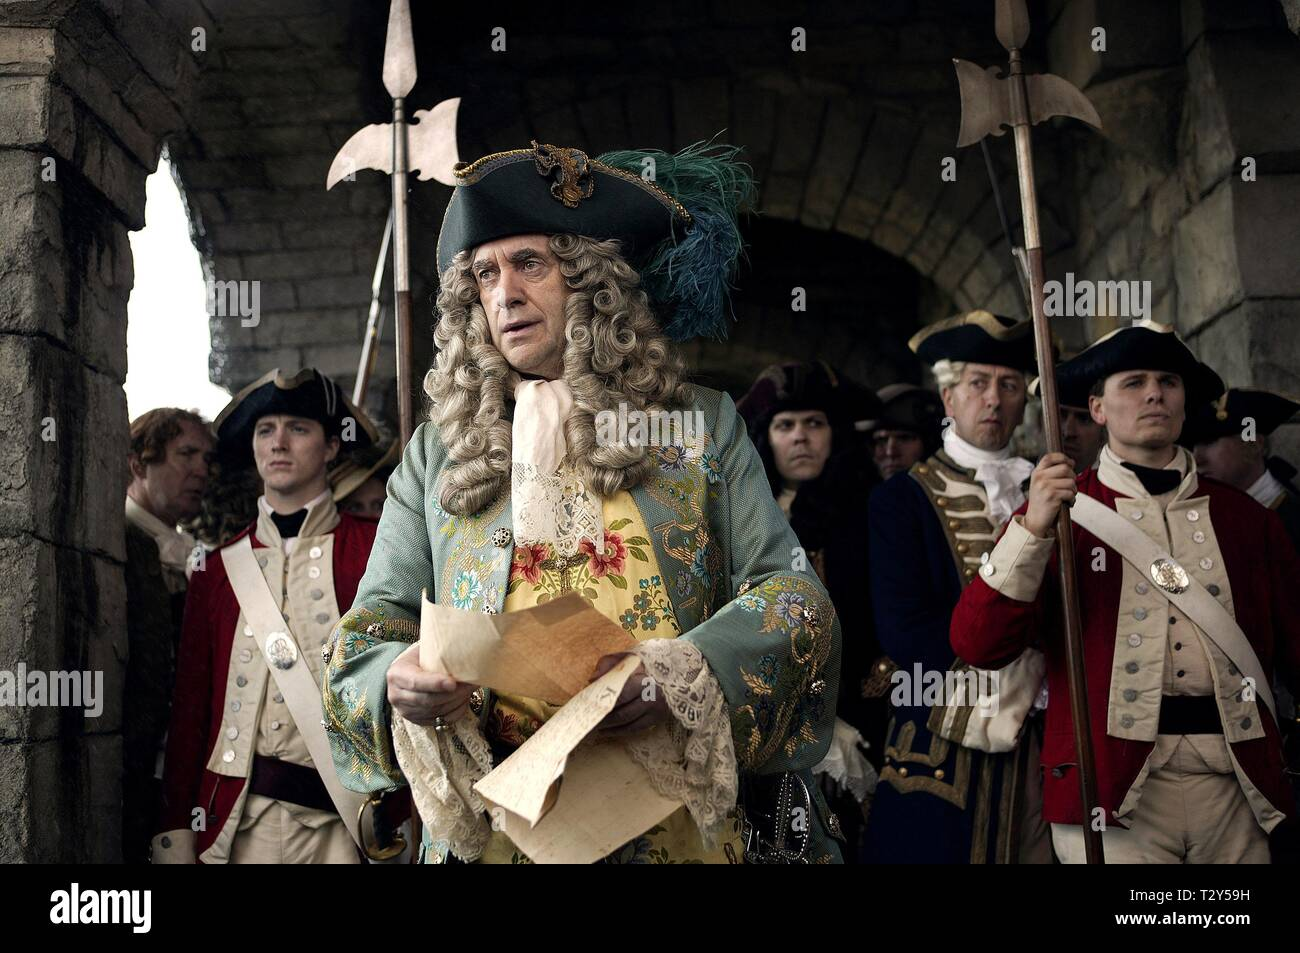 JONATHAN PRYCE, PIRATES OF THE CARIBBEAN: DEAD MAN'S CHEST, 2006 Stock Photo